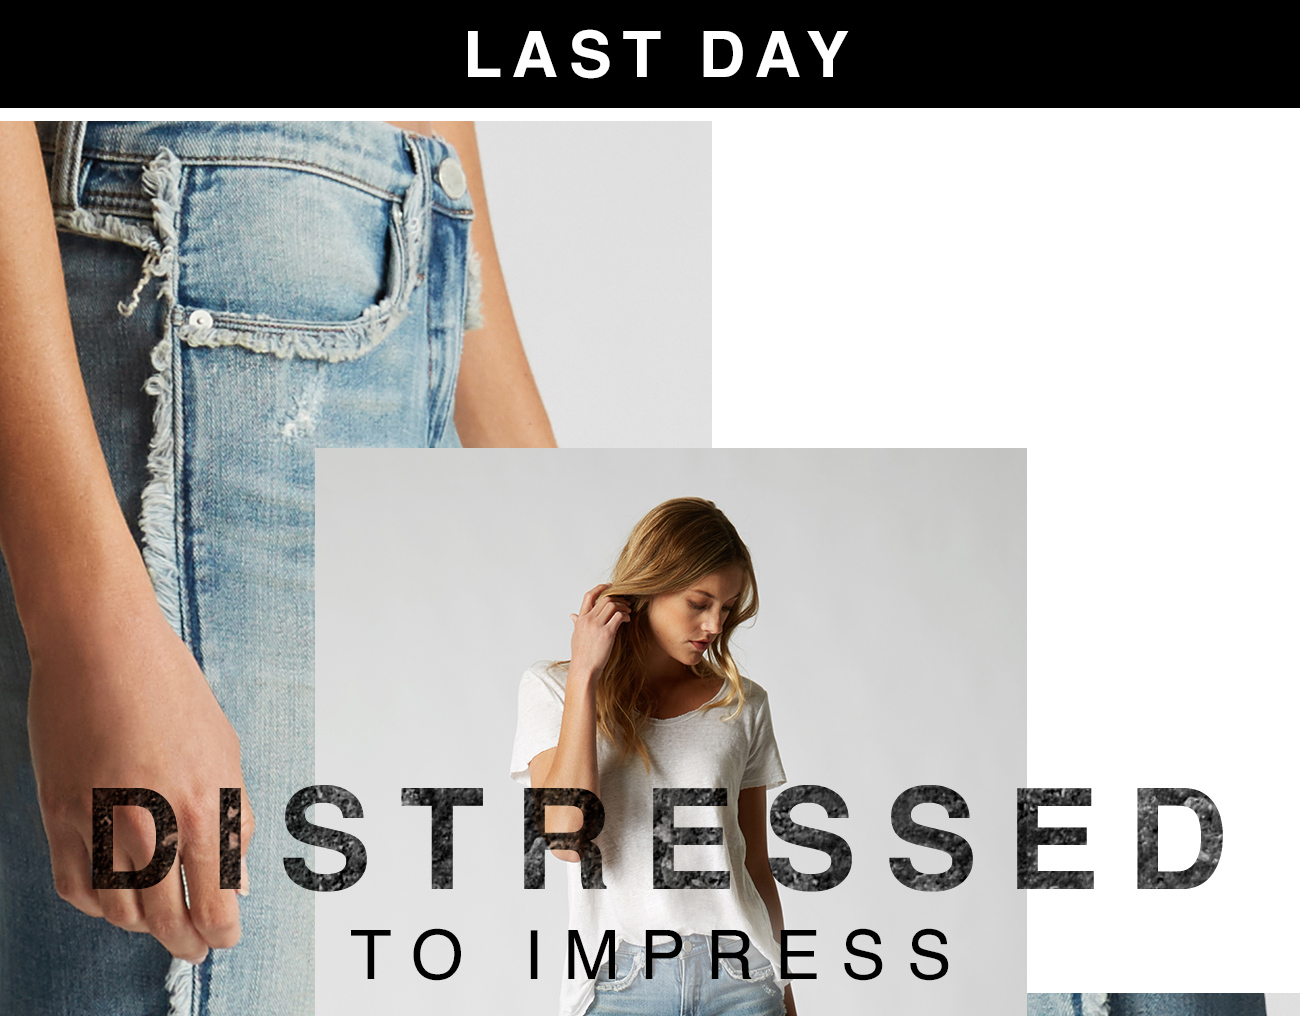 Last Day: Distressed to Impress